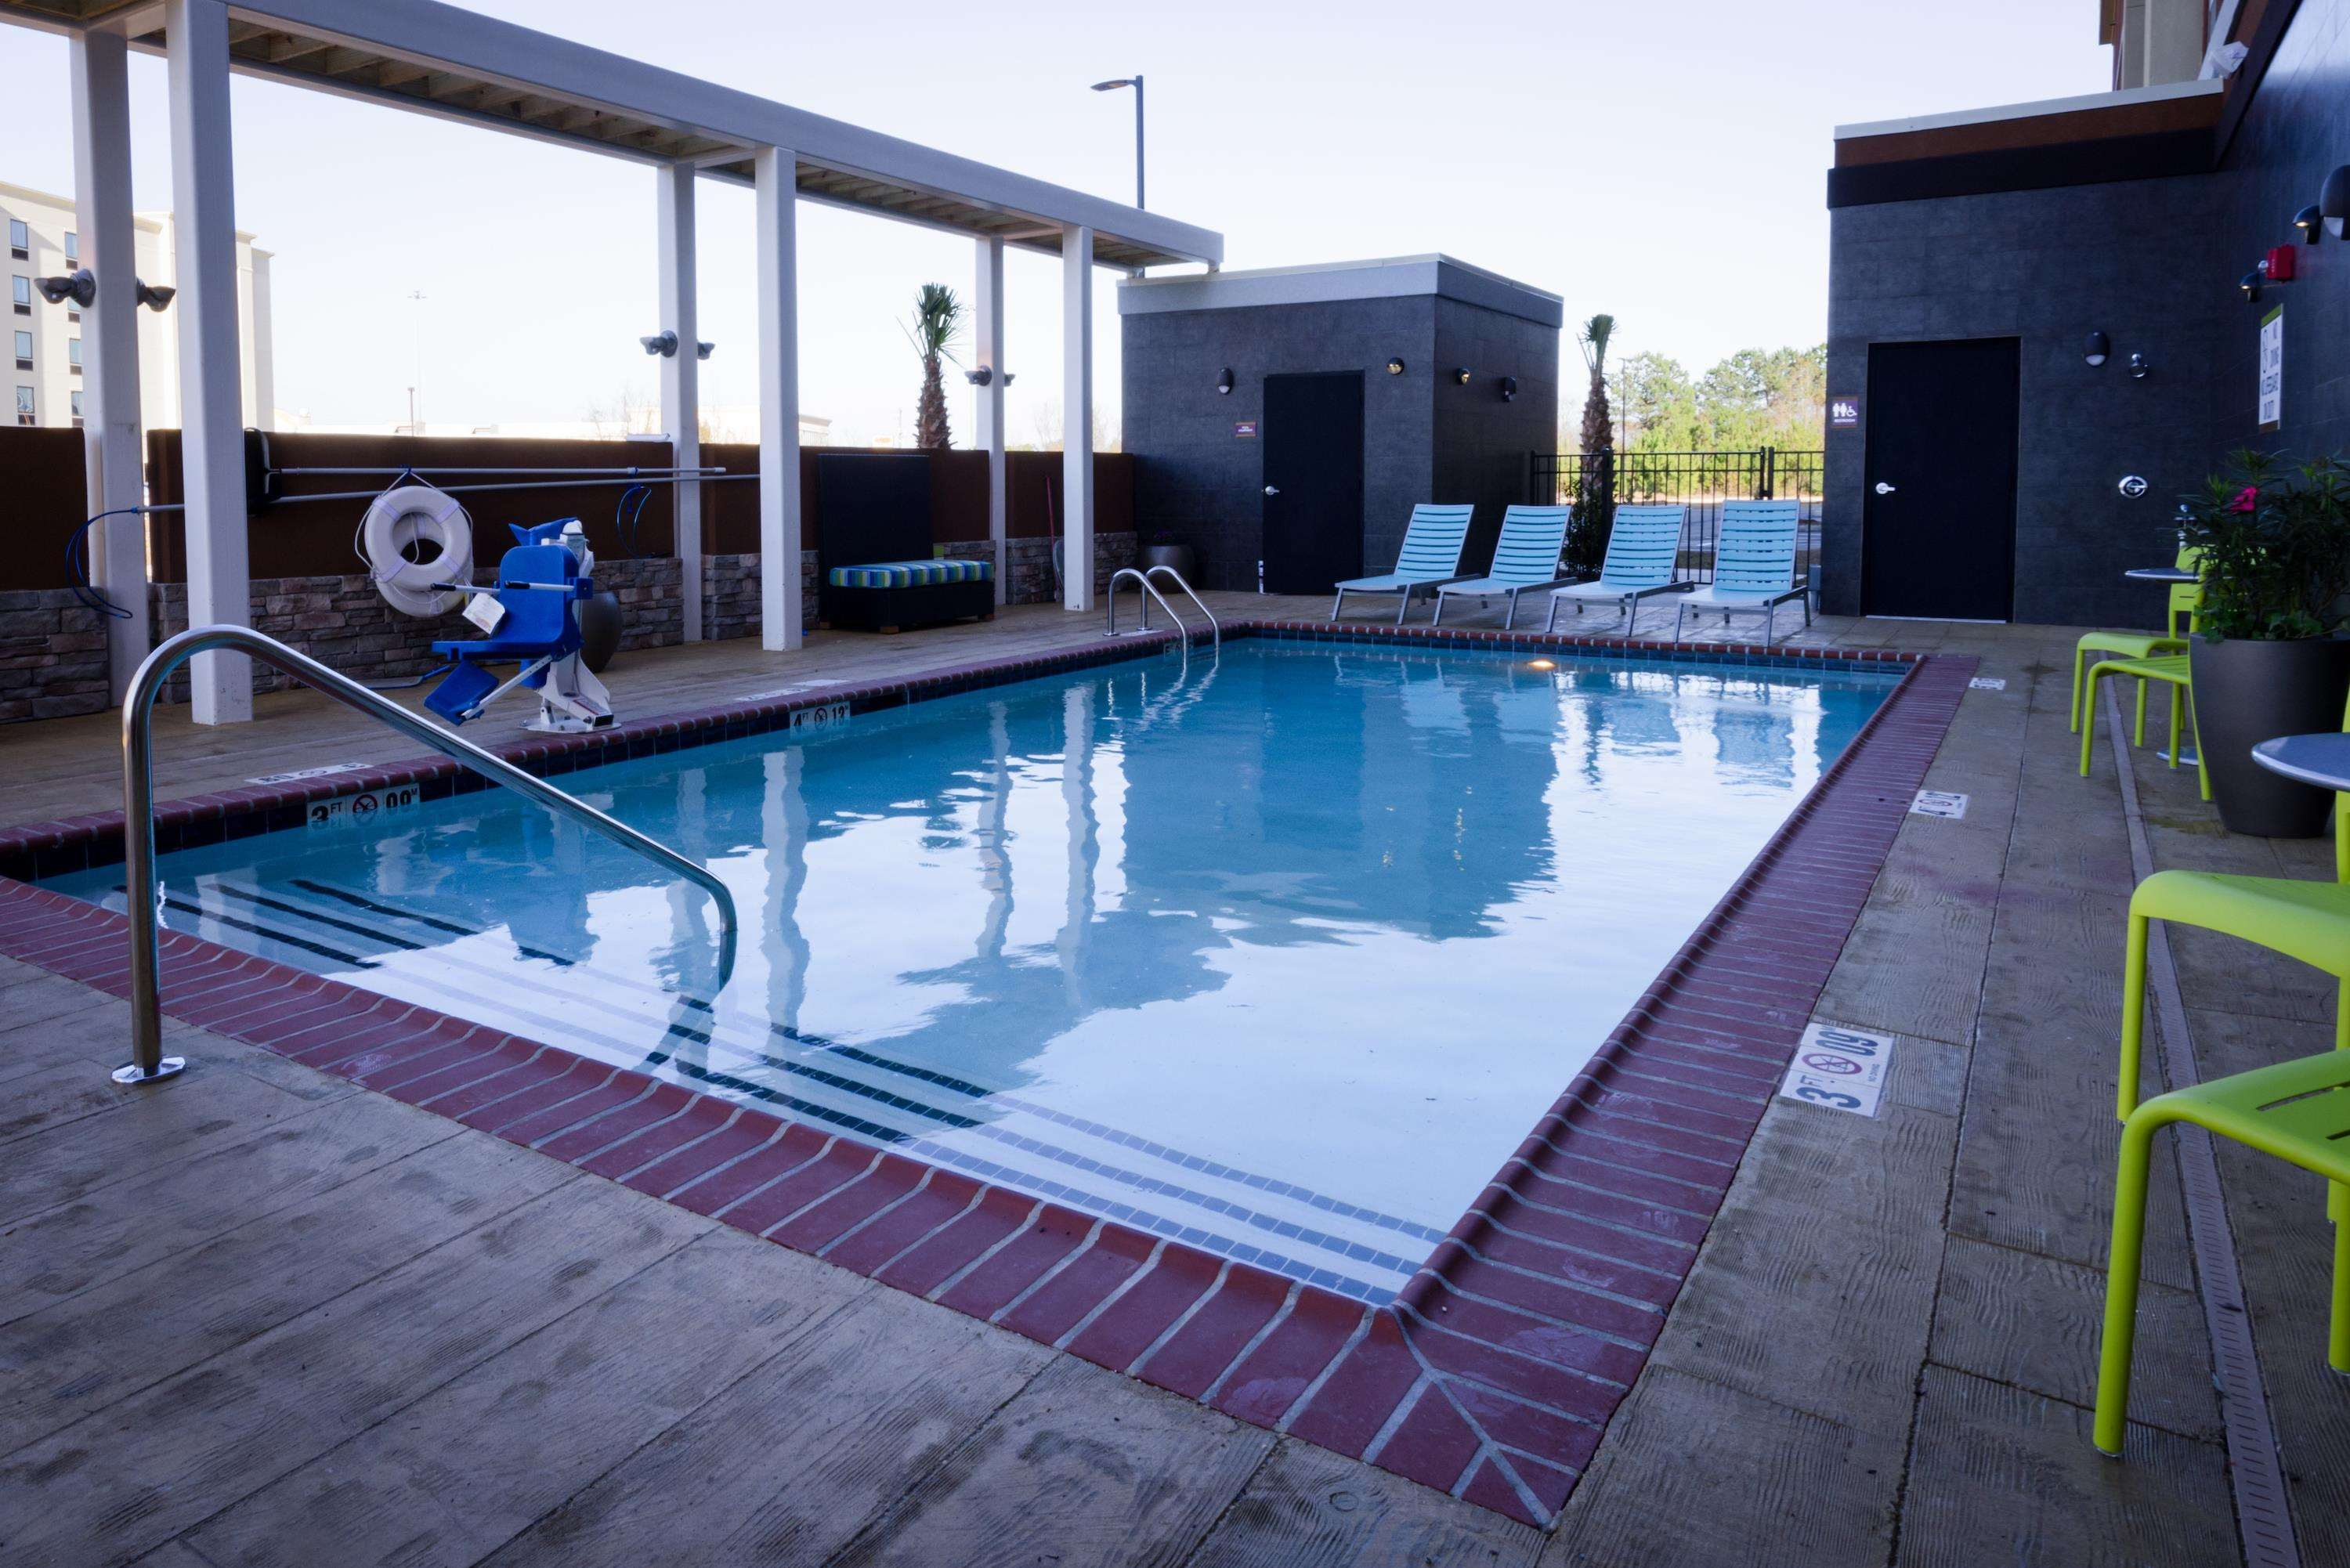 Home2 Suites by Hilton Gulfport I-10 image 7